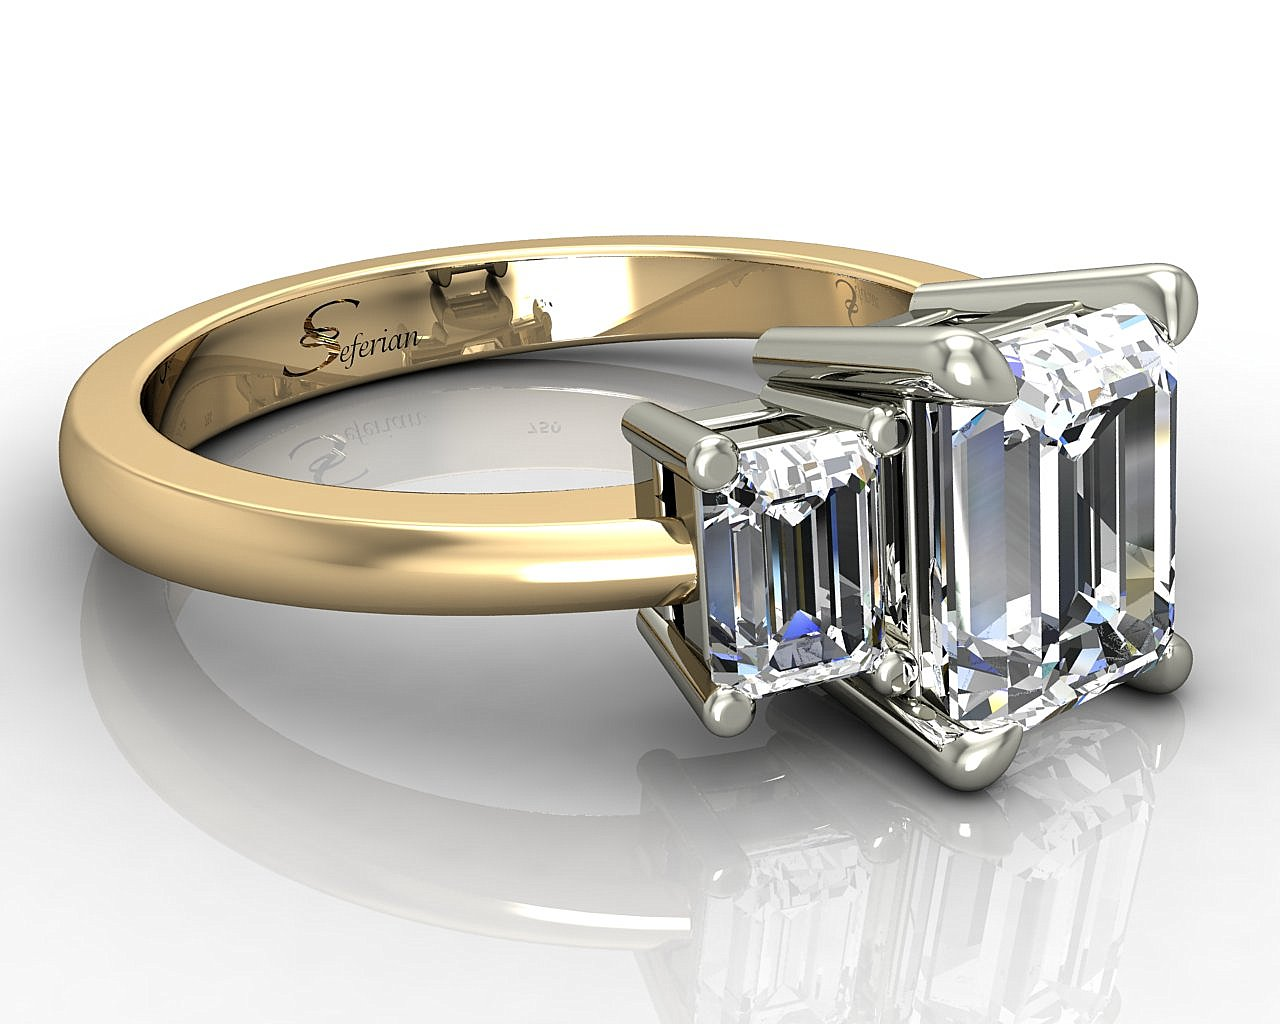 wedding ring designs engagement ring designs diamond ring designs - Ring Design Ideas